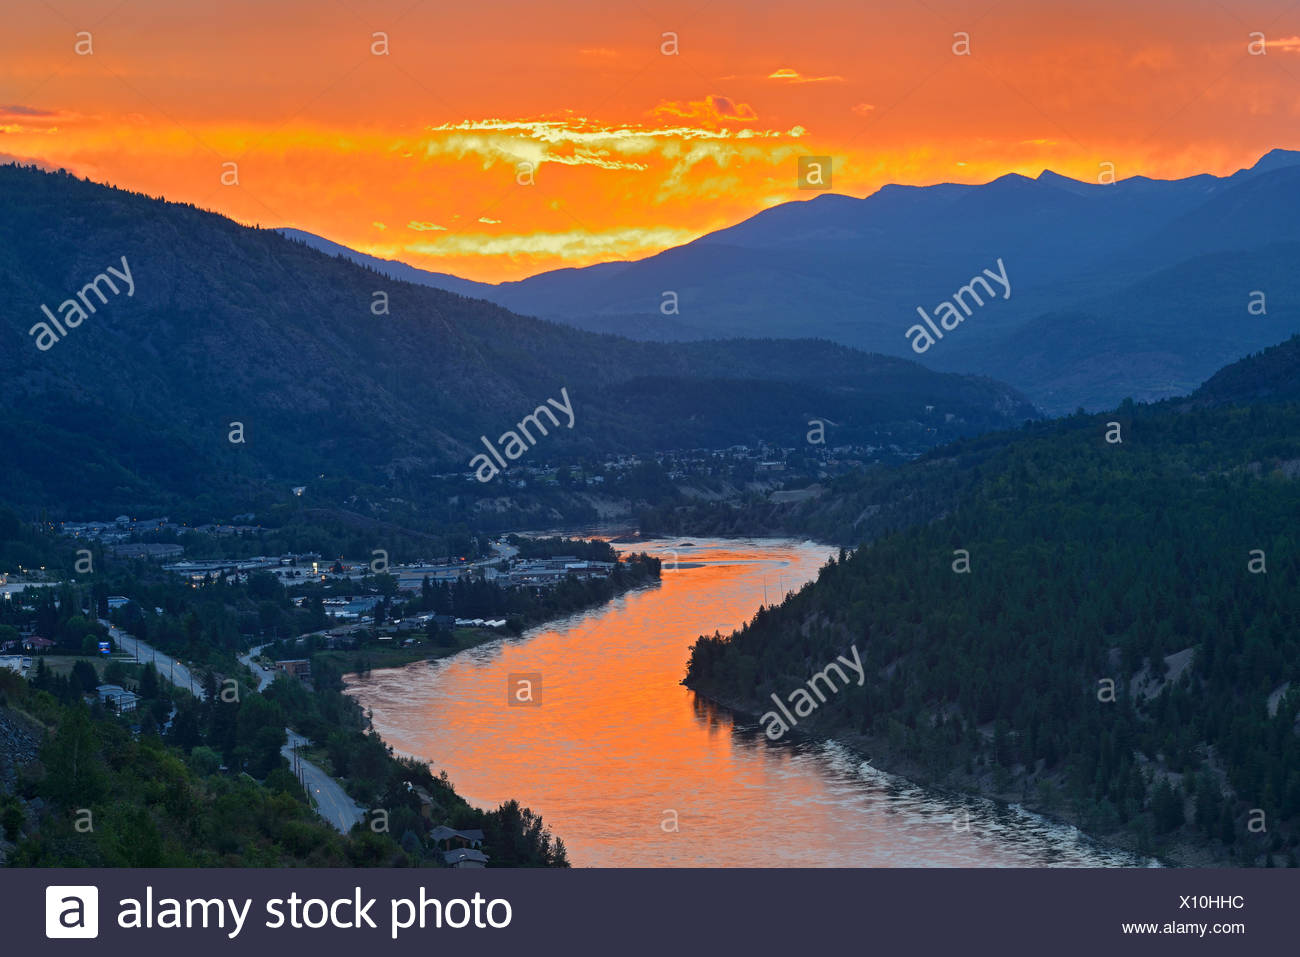 Sunset reflecting off the Columbia River in the Columbia Valley flanked by the Monashee Mountains in the West and the Selkirk Mountains in the East, Trail, British Columbia, Canada - Stock Image